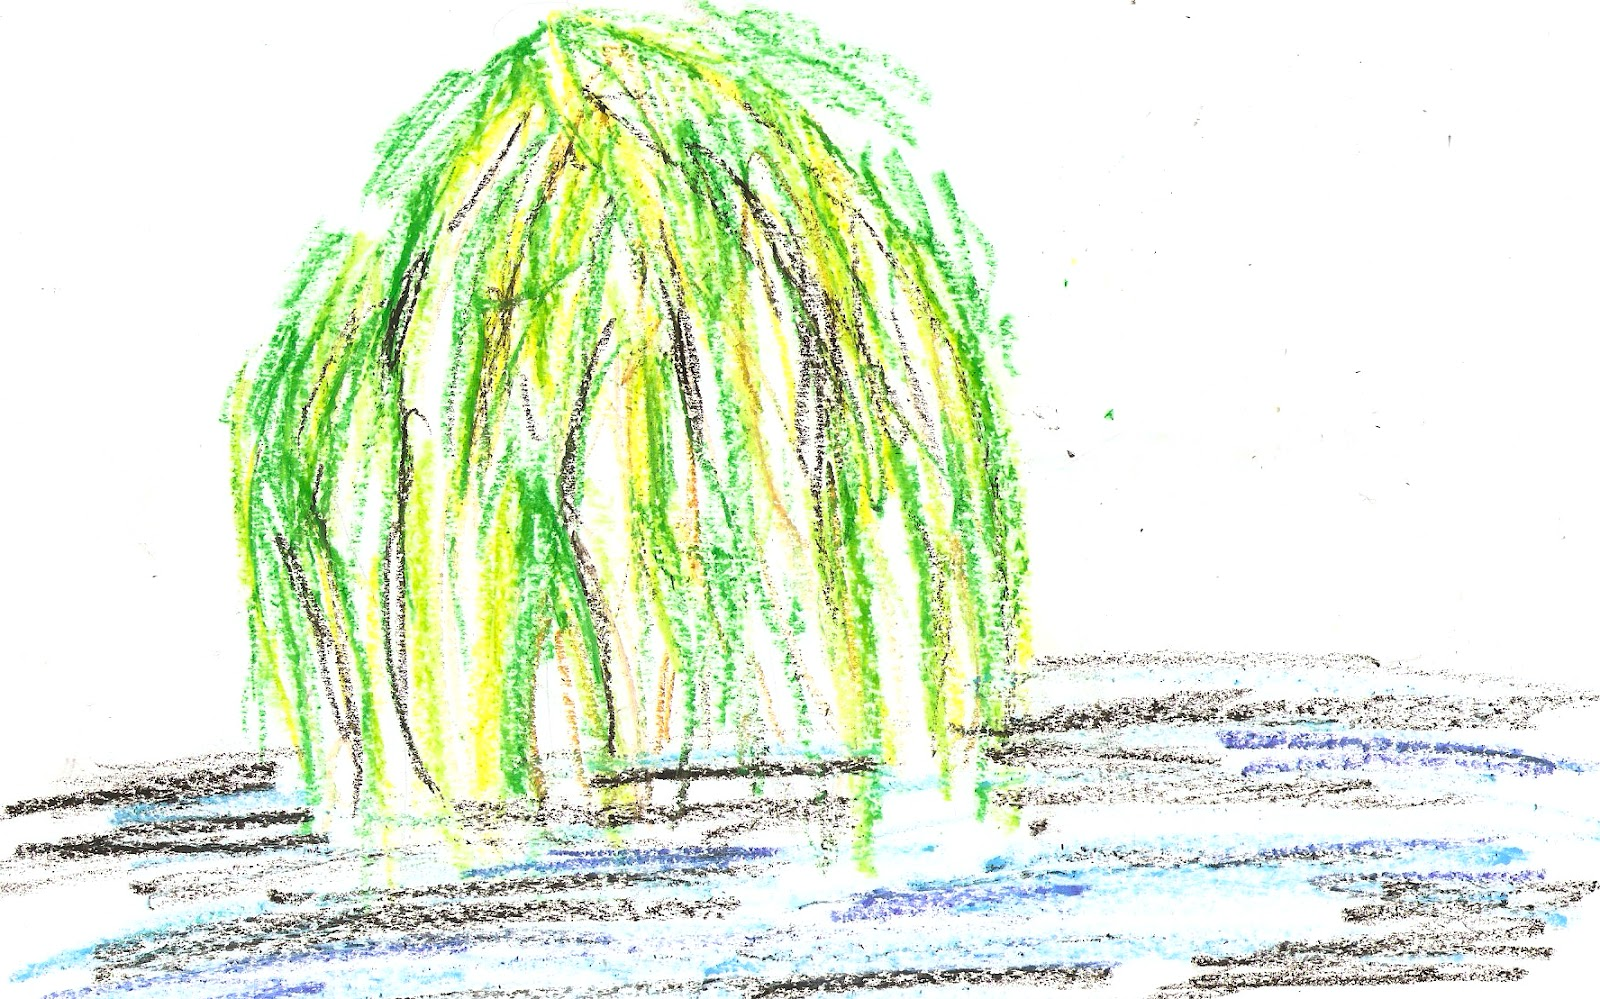 Lollipops and Salamanders: Willow Tree - 21/8/12